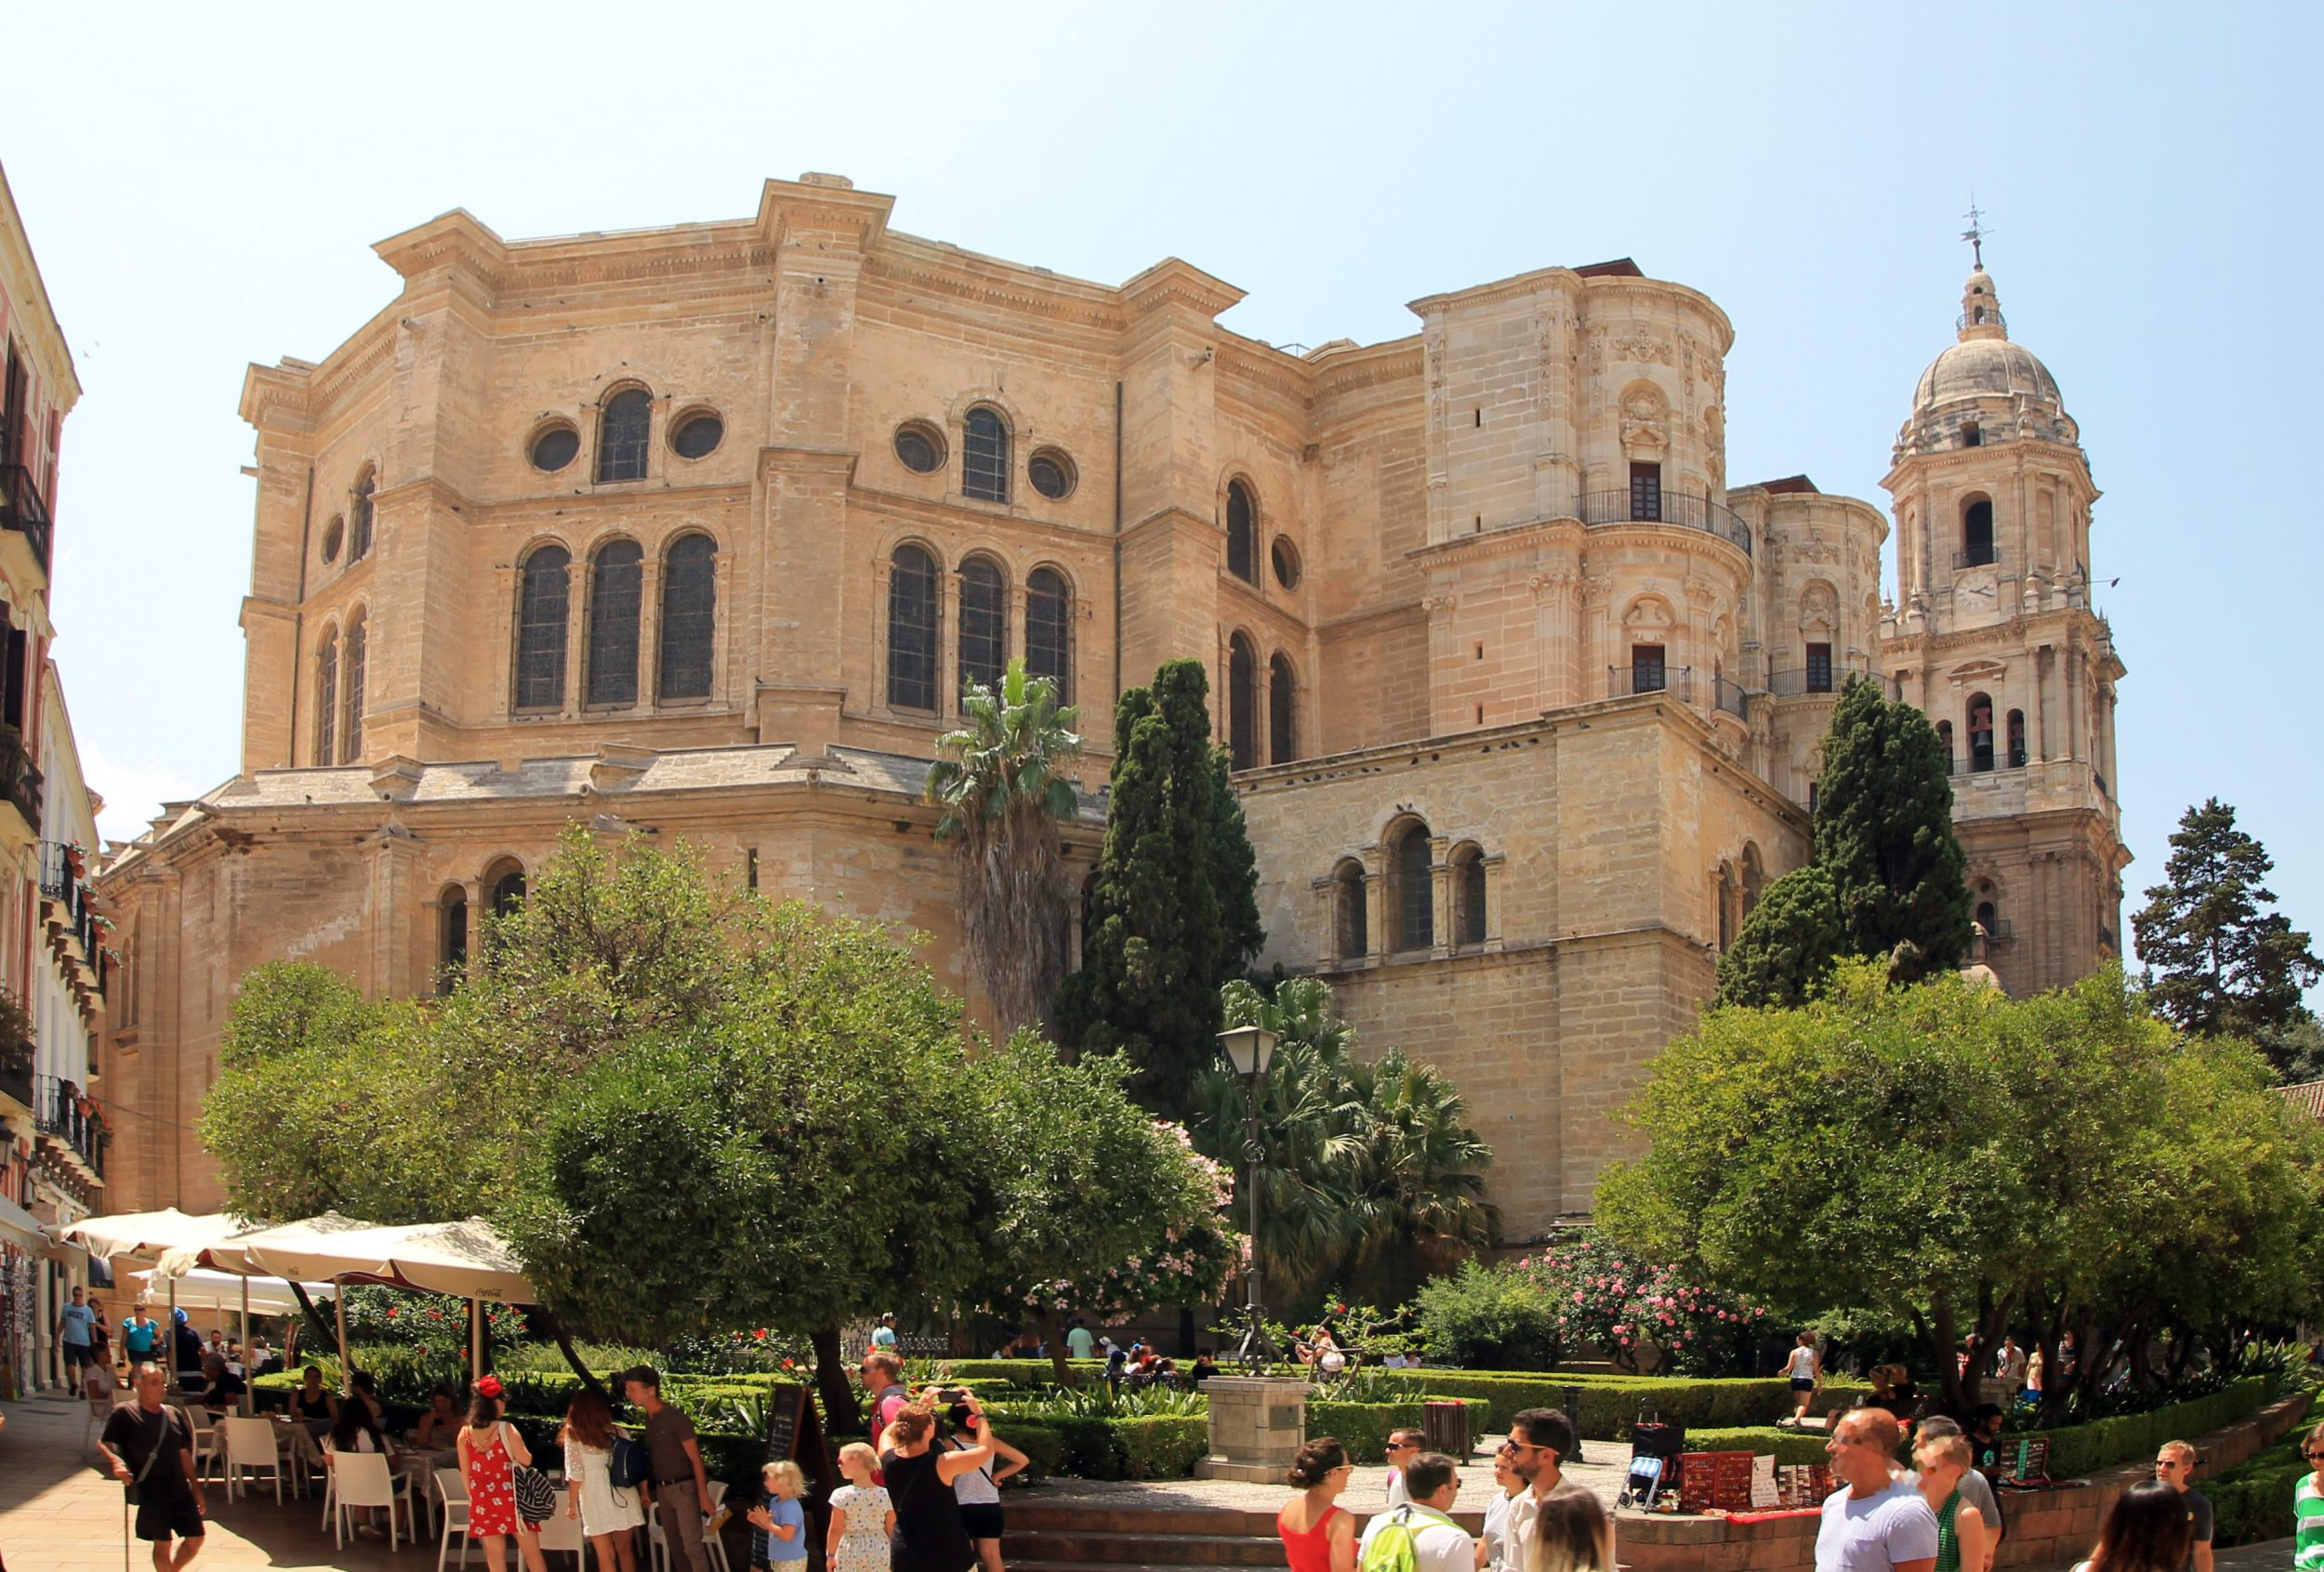 View of the CATHEDRAL OF MALAGA (Andalusia, Spain) from the north-east angle.